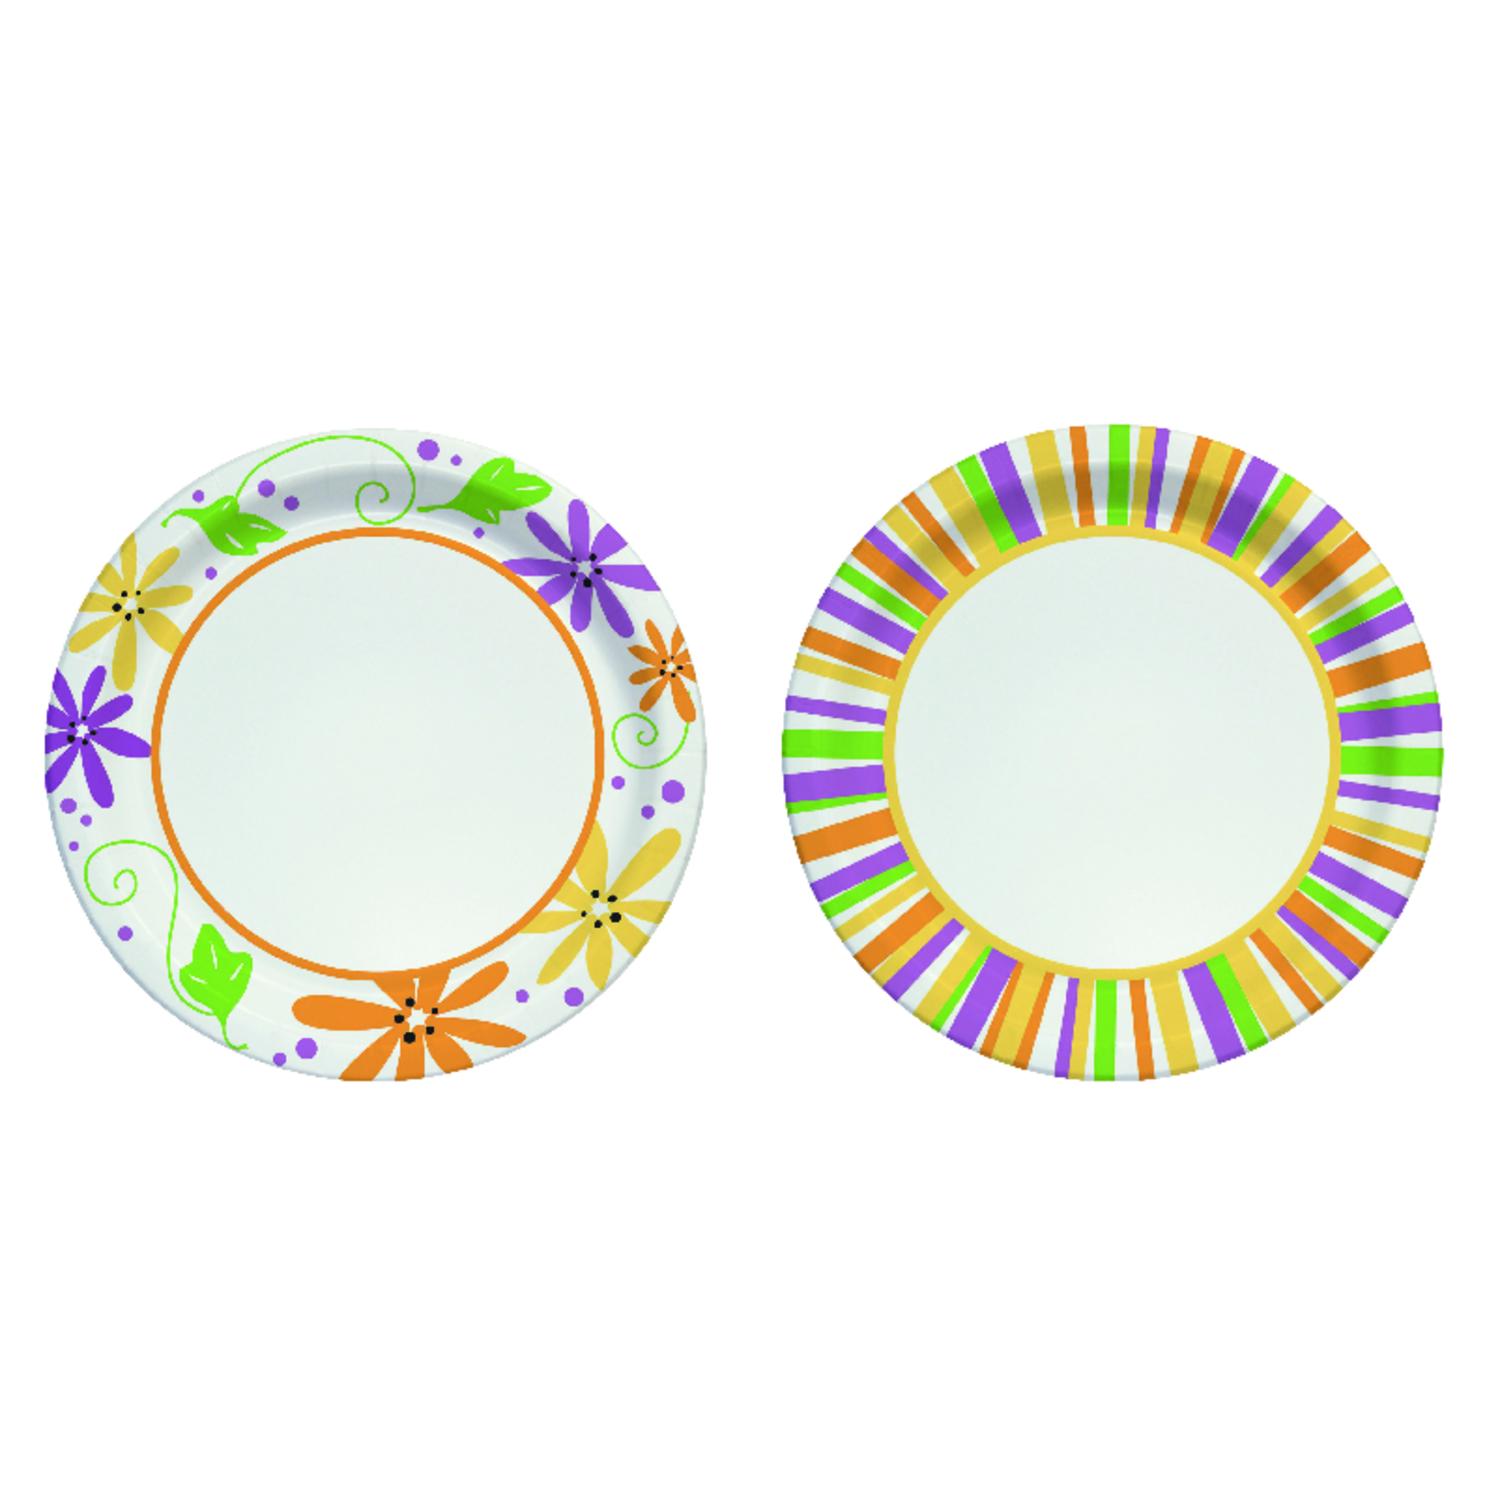 Solo  Paper  Mixed Garden Party Stripes and Flowers Design  Plate  48 pk